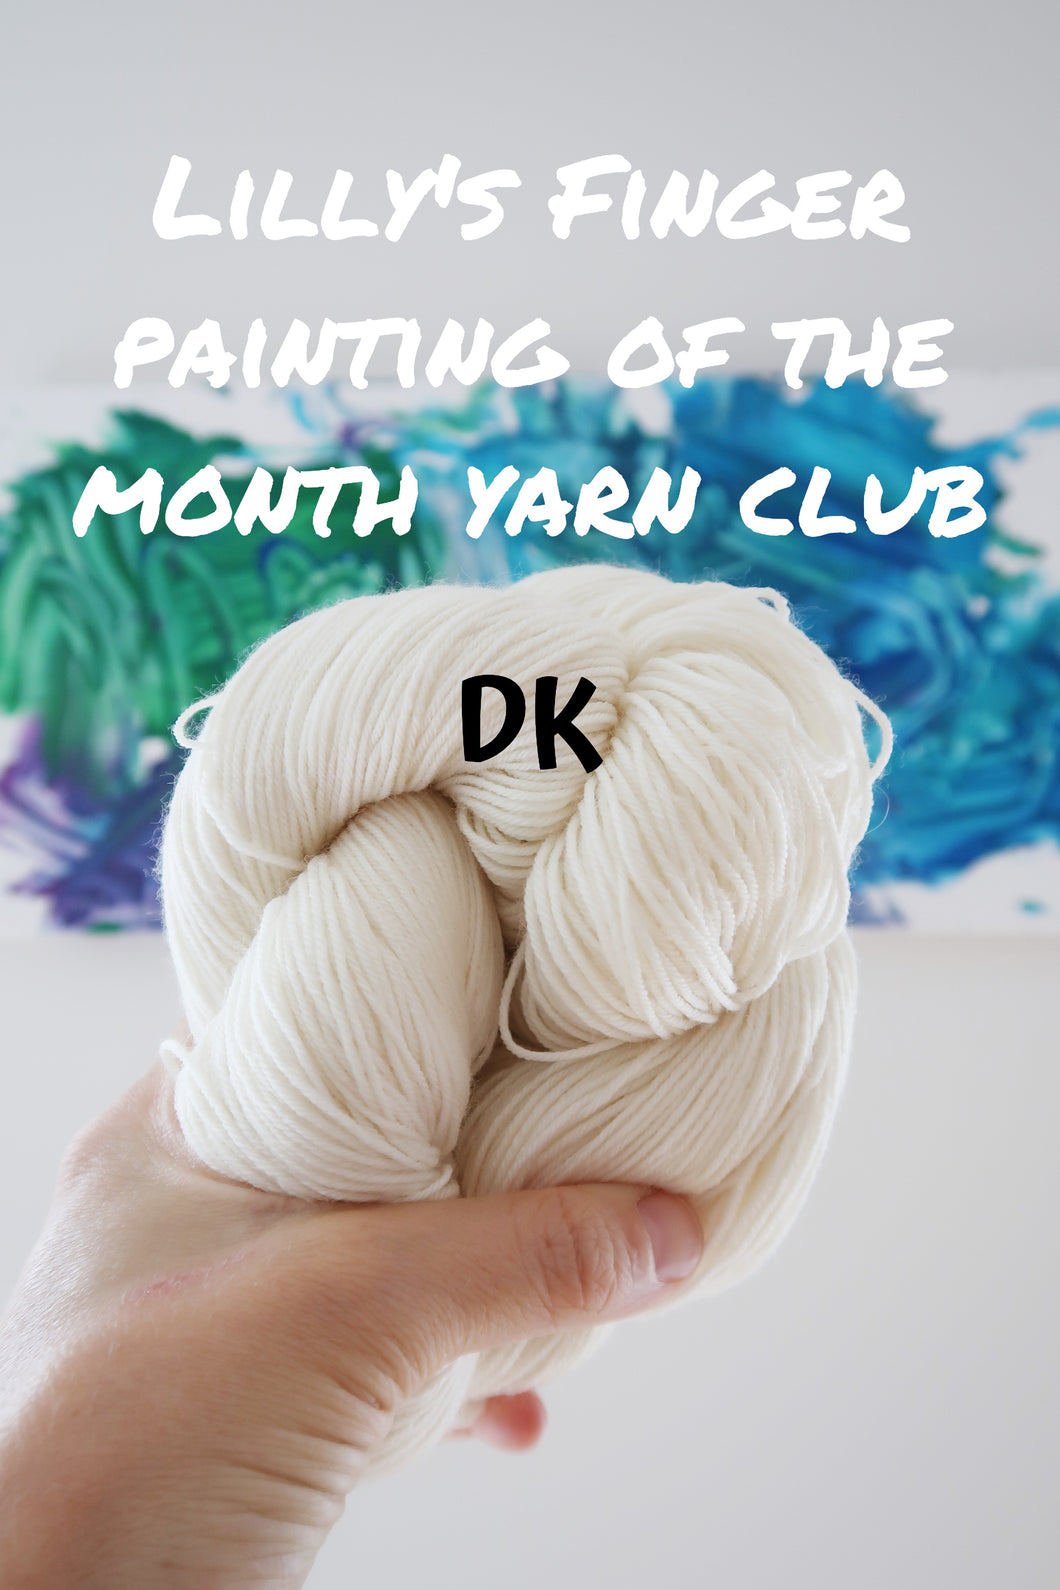 September Lilly's Finger Painting of the Month Yarn Club (DK)